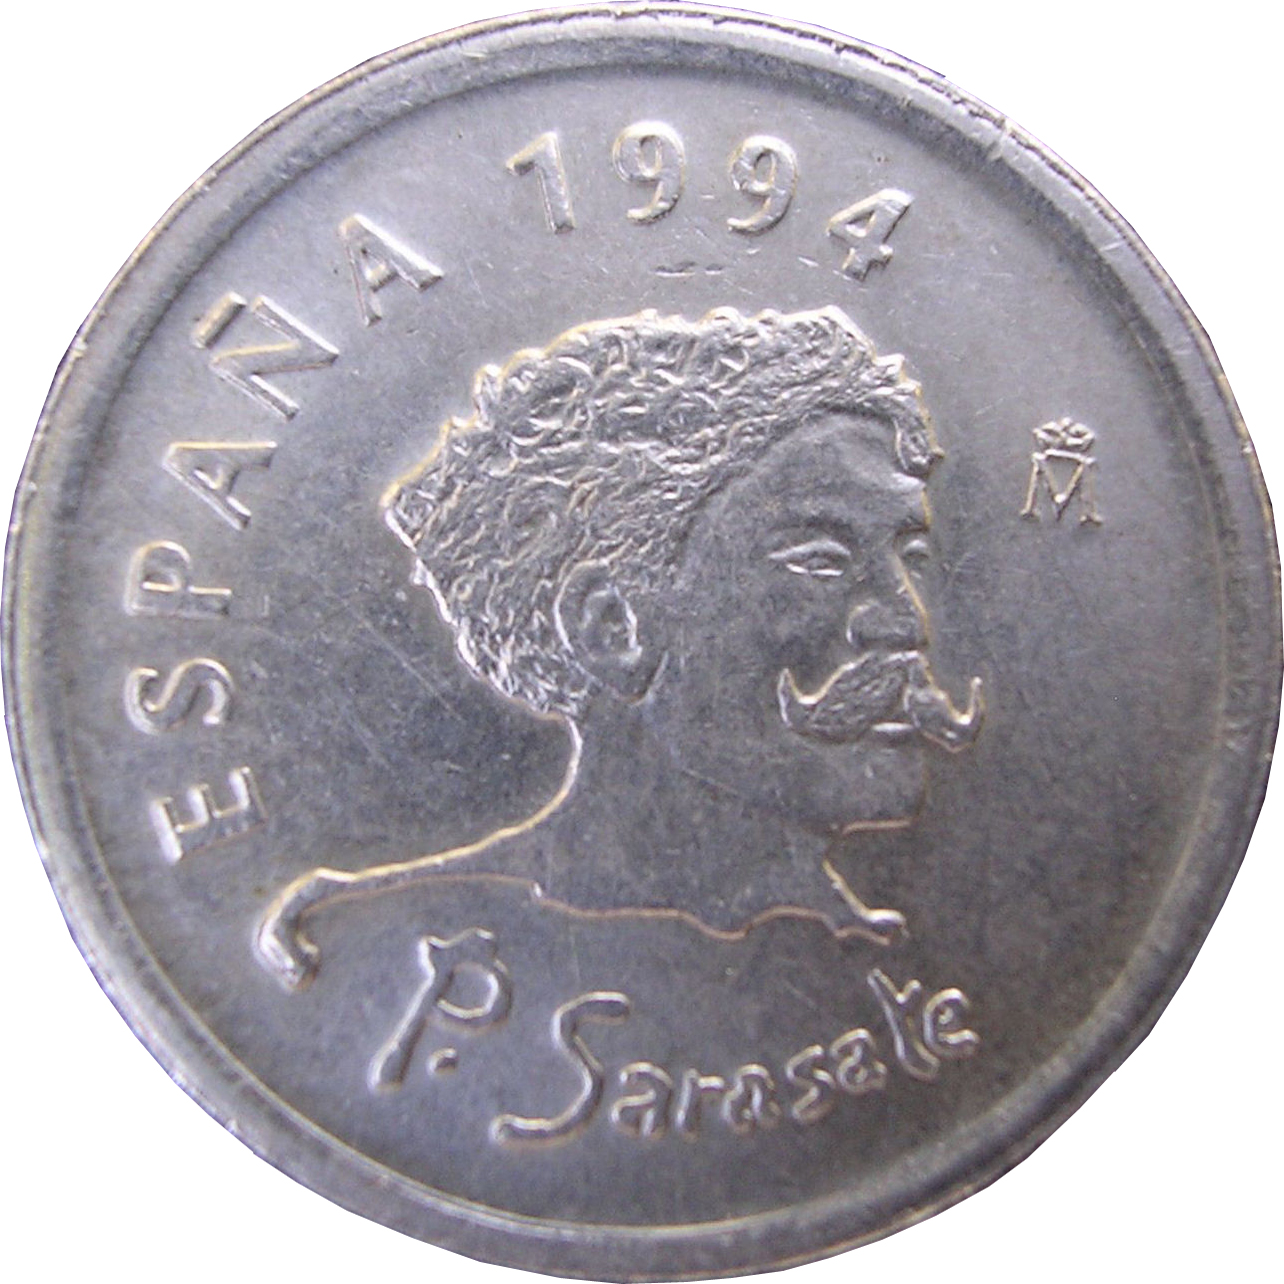 1994 Spain 10 Peseta Coin Honors Sarasate